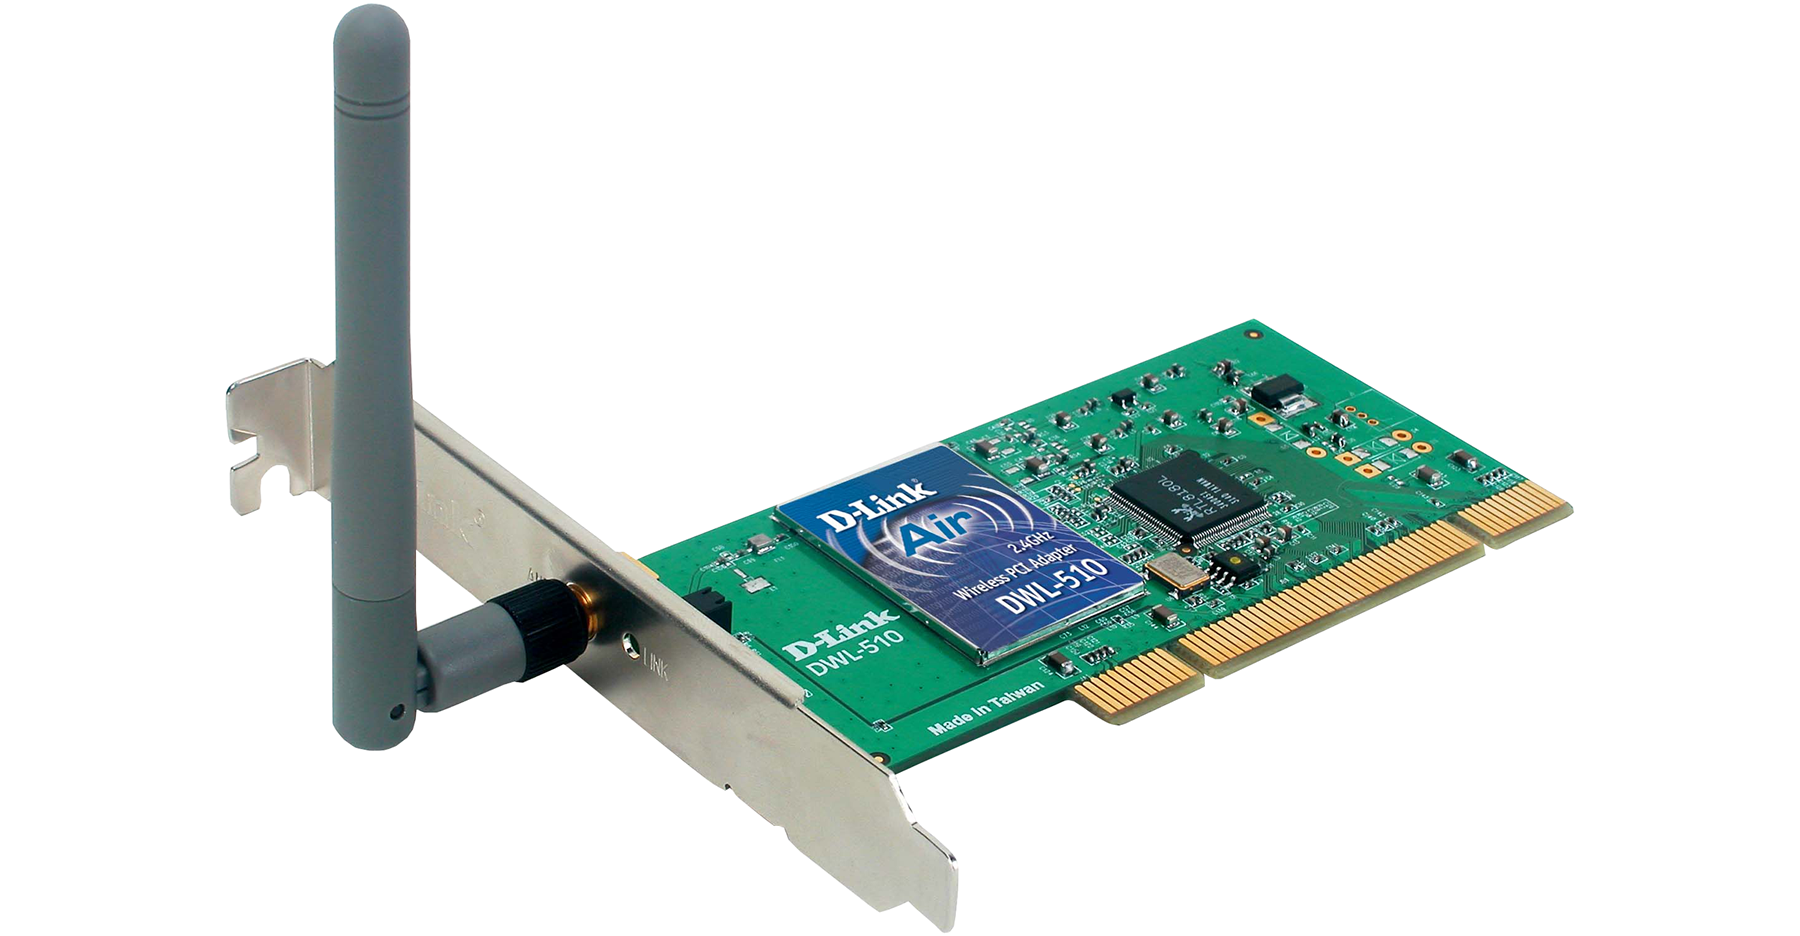 D LINK AIRPLUS G DWL G510 WIRELESS PCI WINDOWS 10 DRIVERS DOWNLOAD